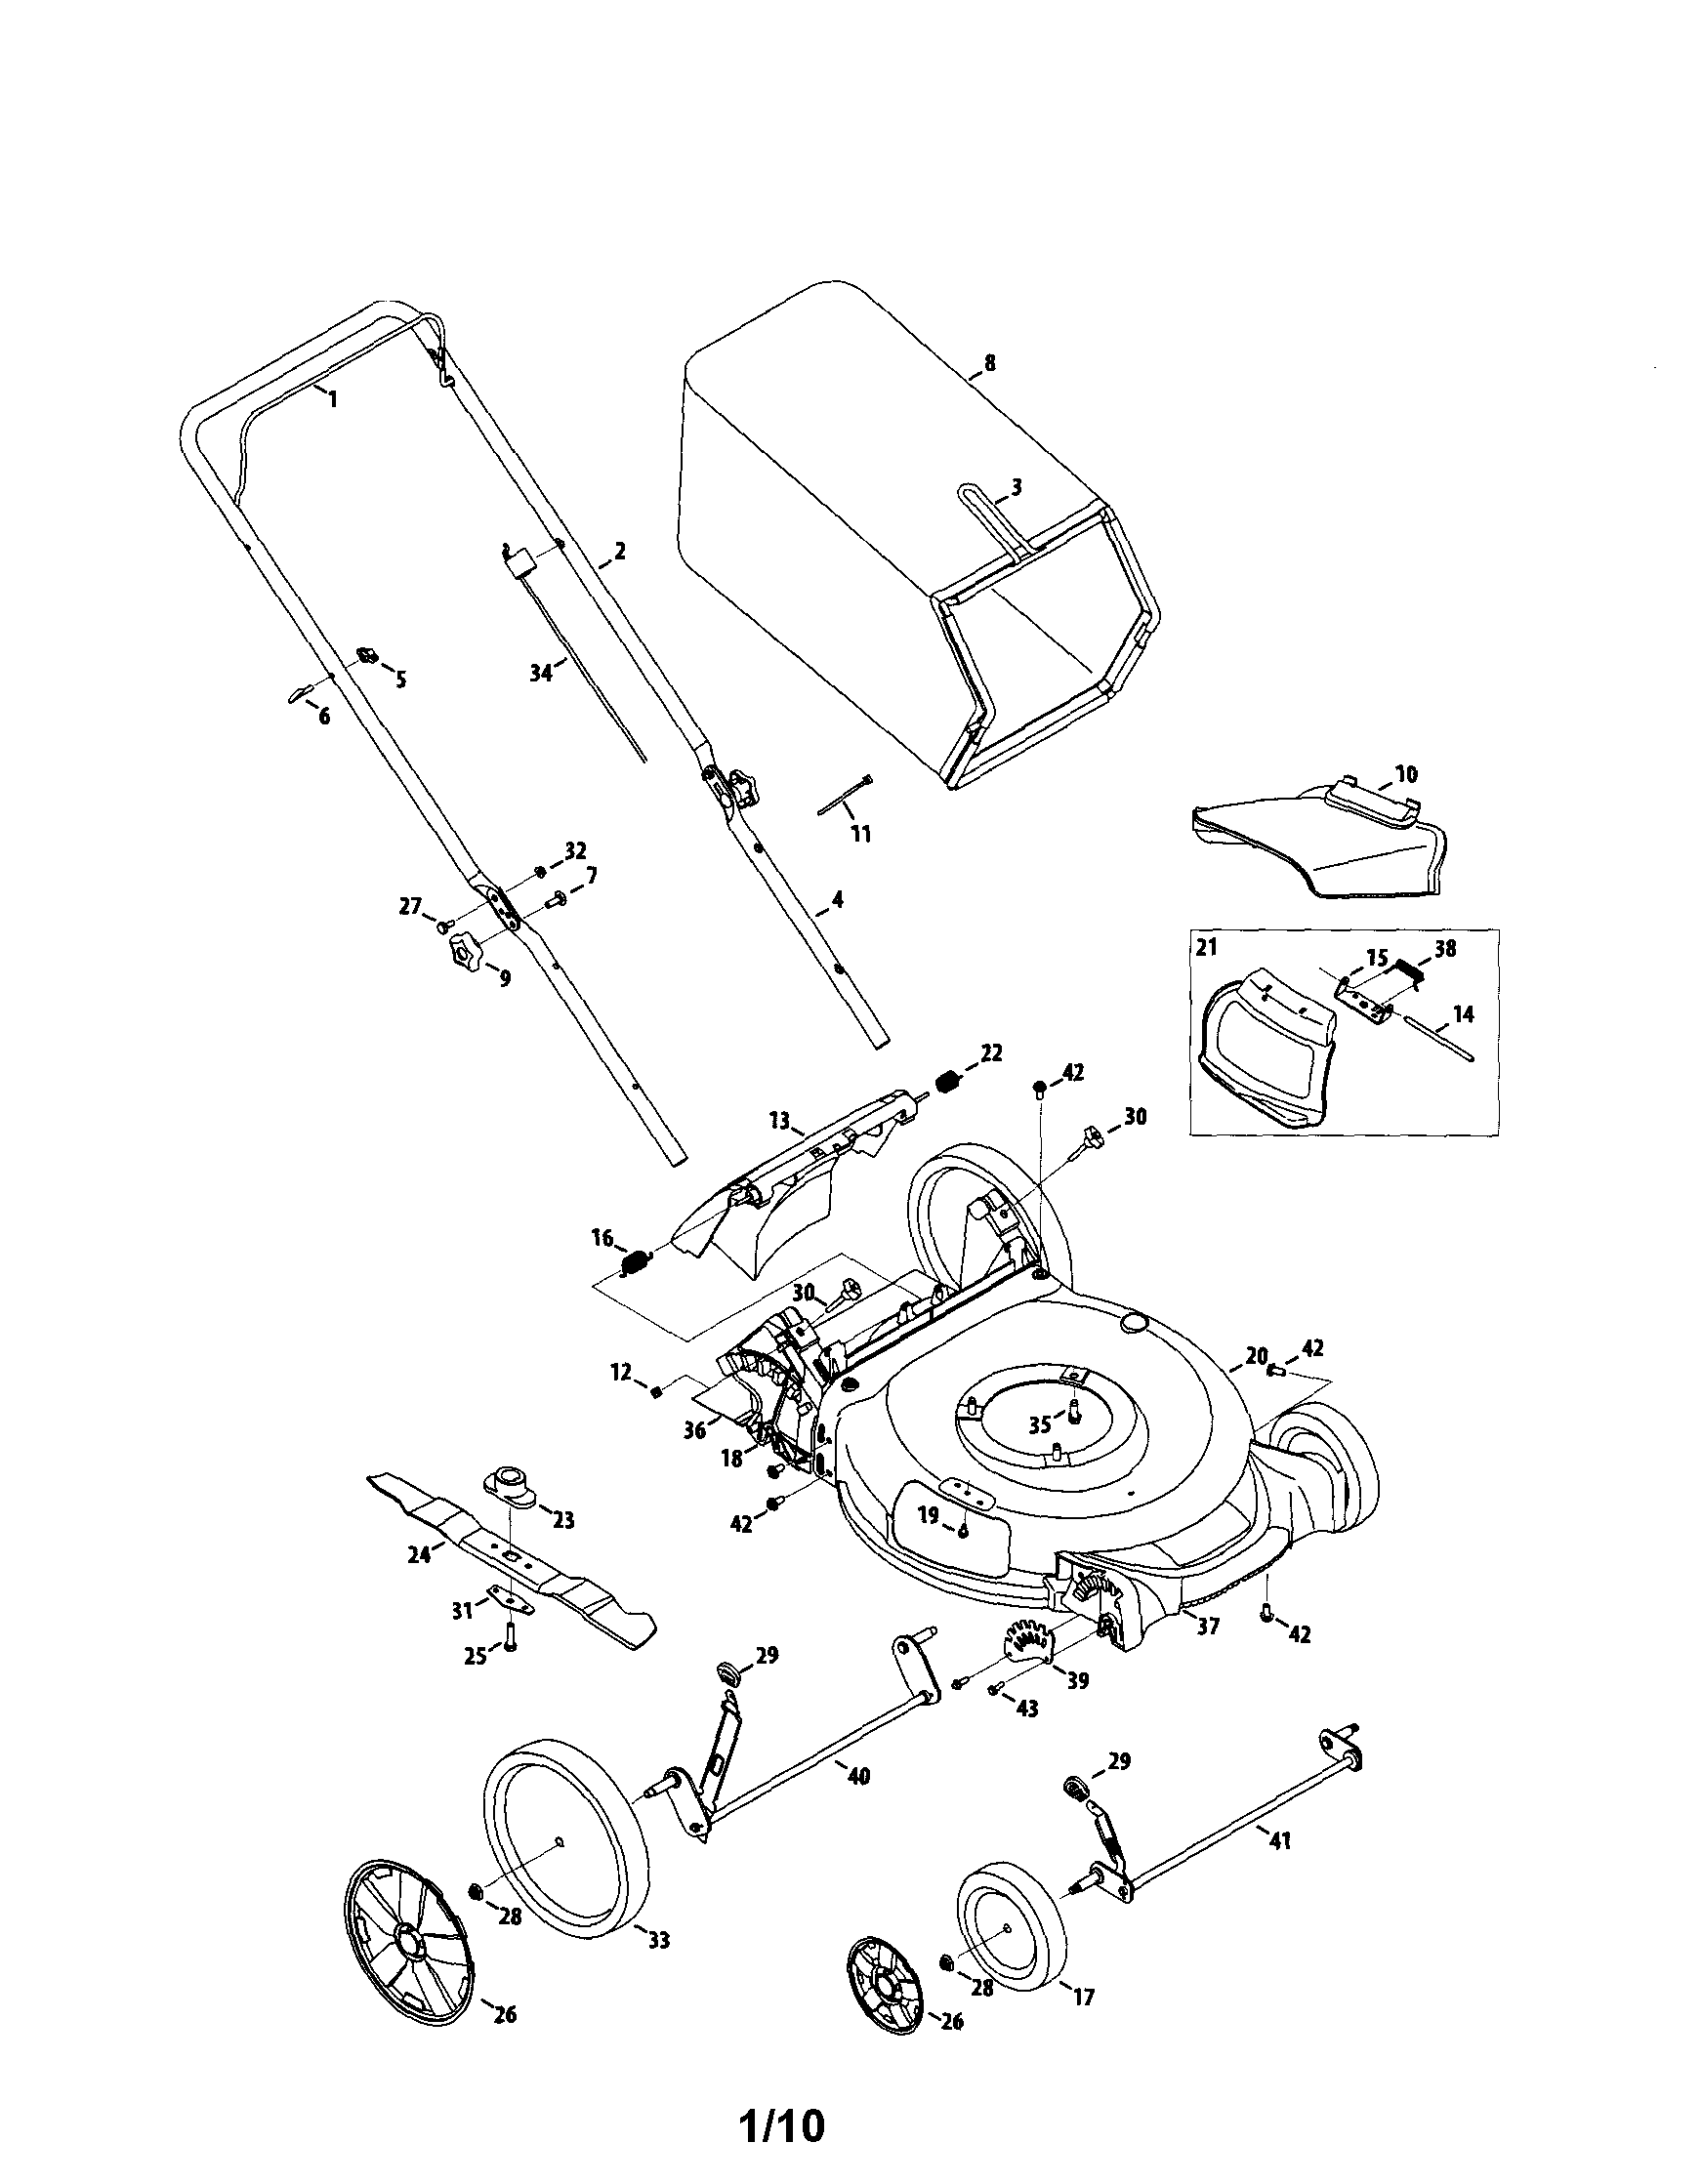 Teseh Lawn Mower Engine Parts, Teseh, Free Engine Image